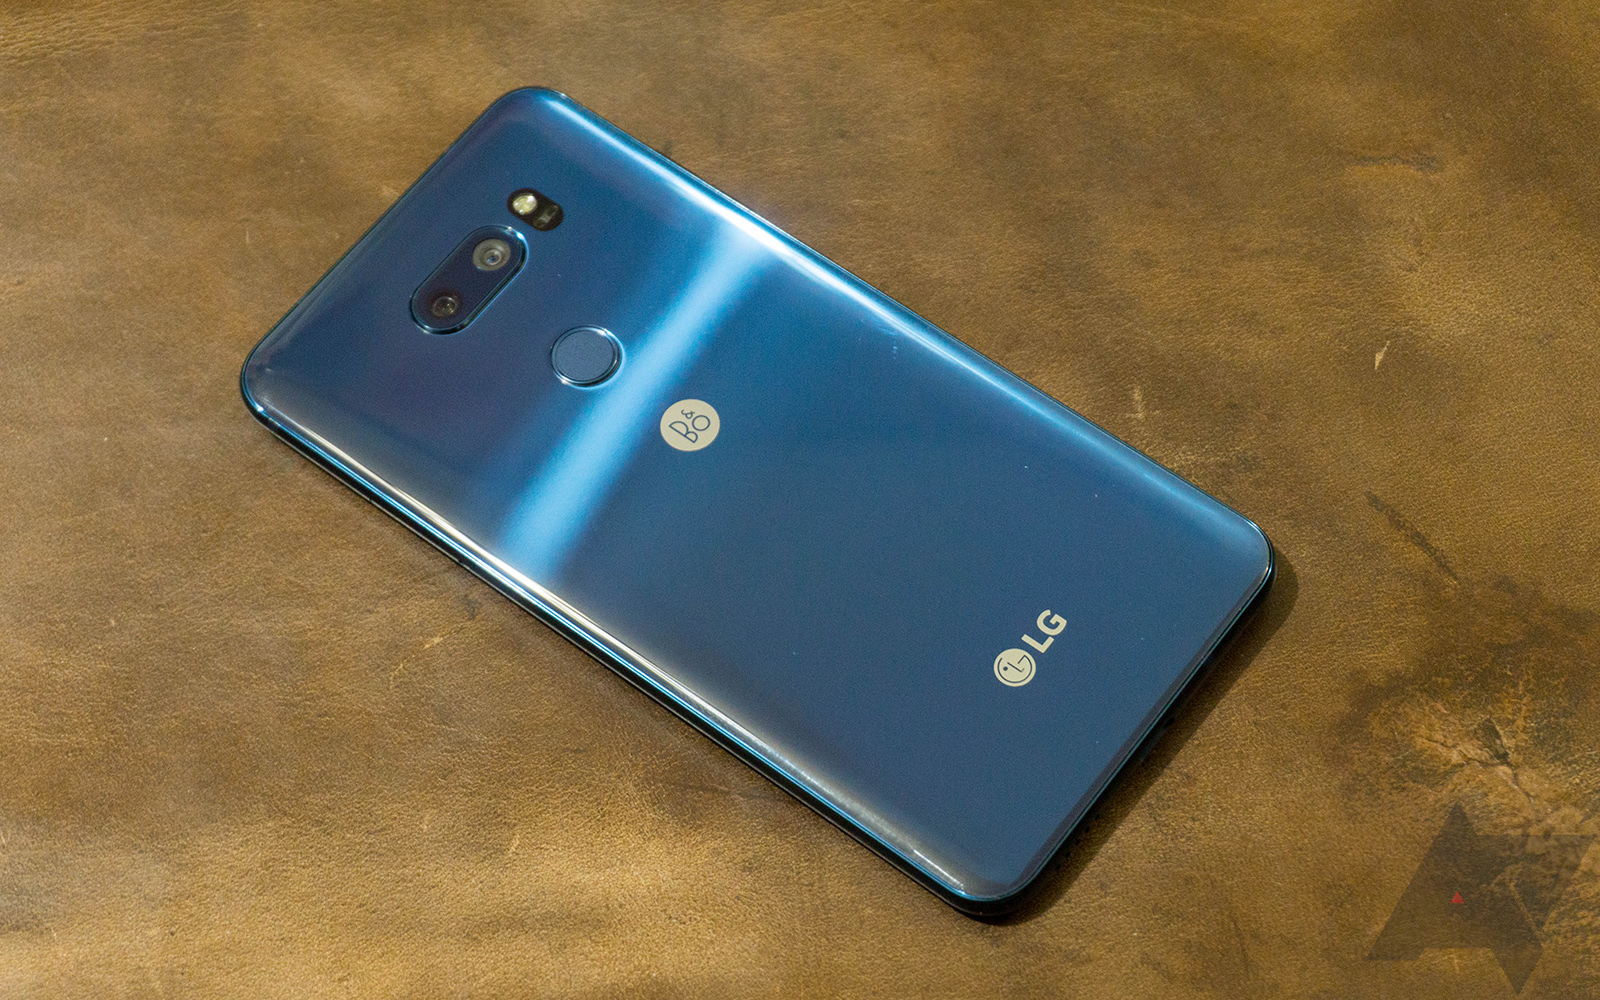 Hands-on] LG announces the LG V30S ThinQ, which is just a